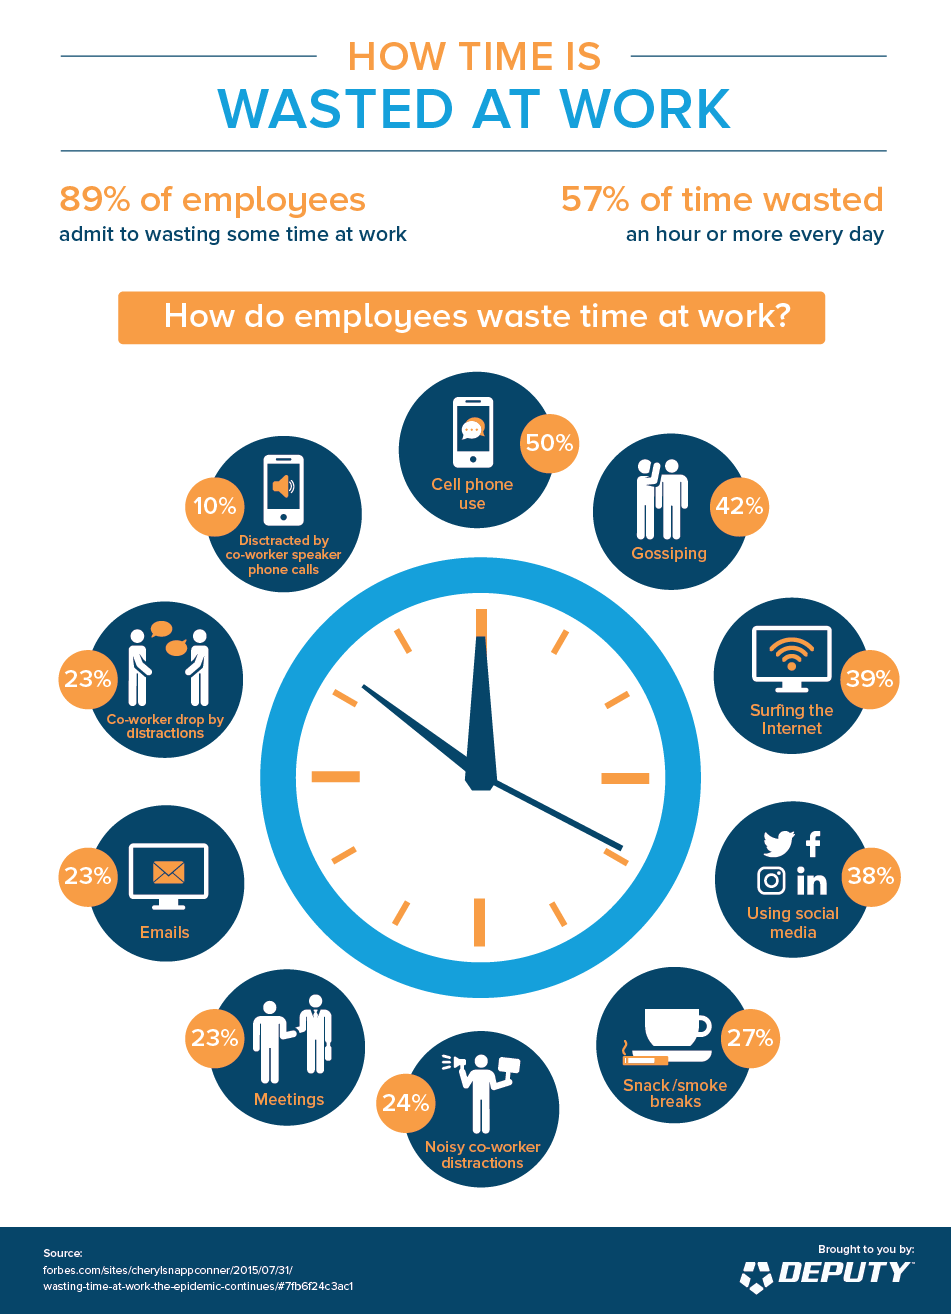 Deputy-How Time is Wasted at Work infographic